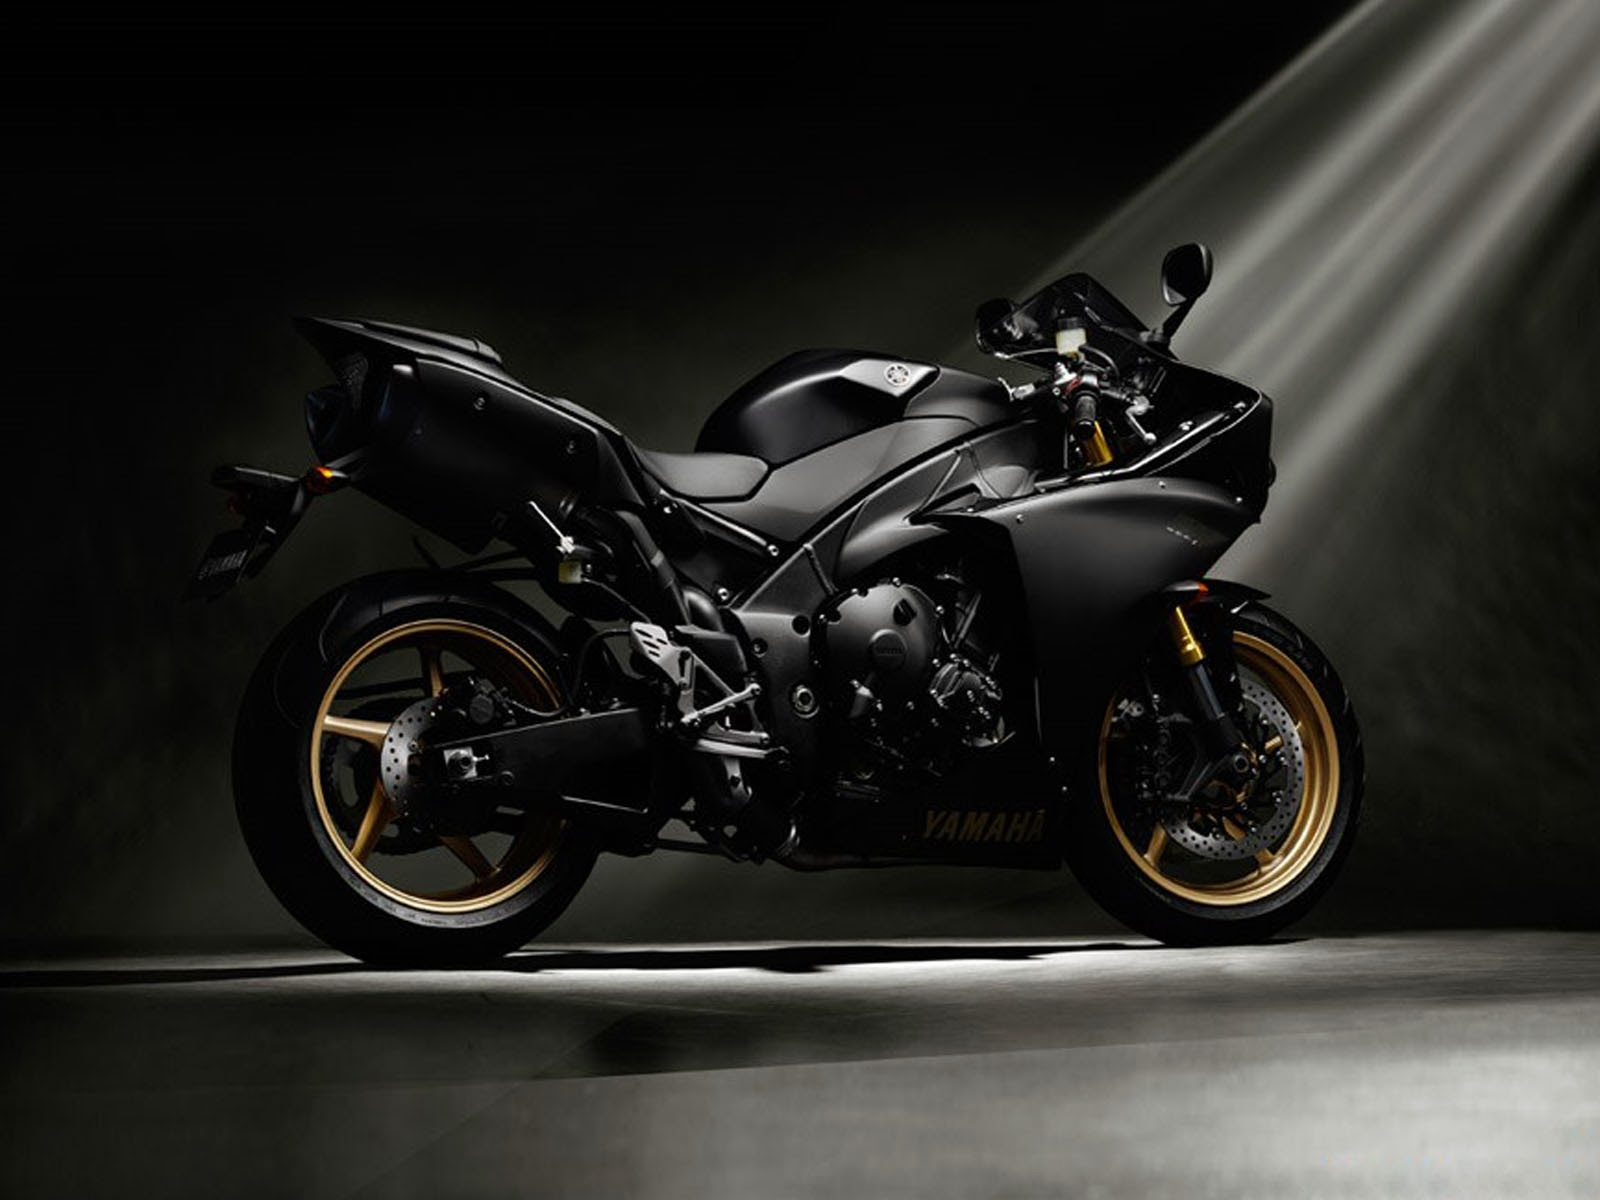 Bmw Wallpaper Hd Free Download Wallpapers Yamaha Yzf R1 Wallpapers